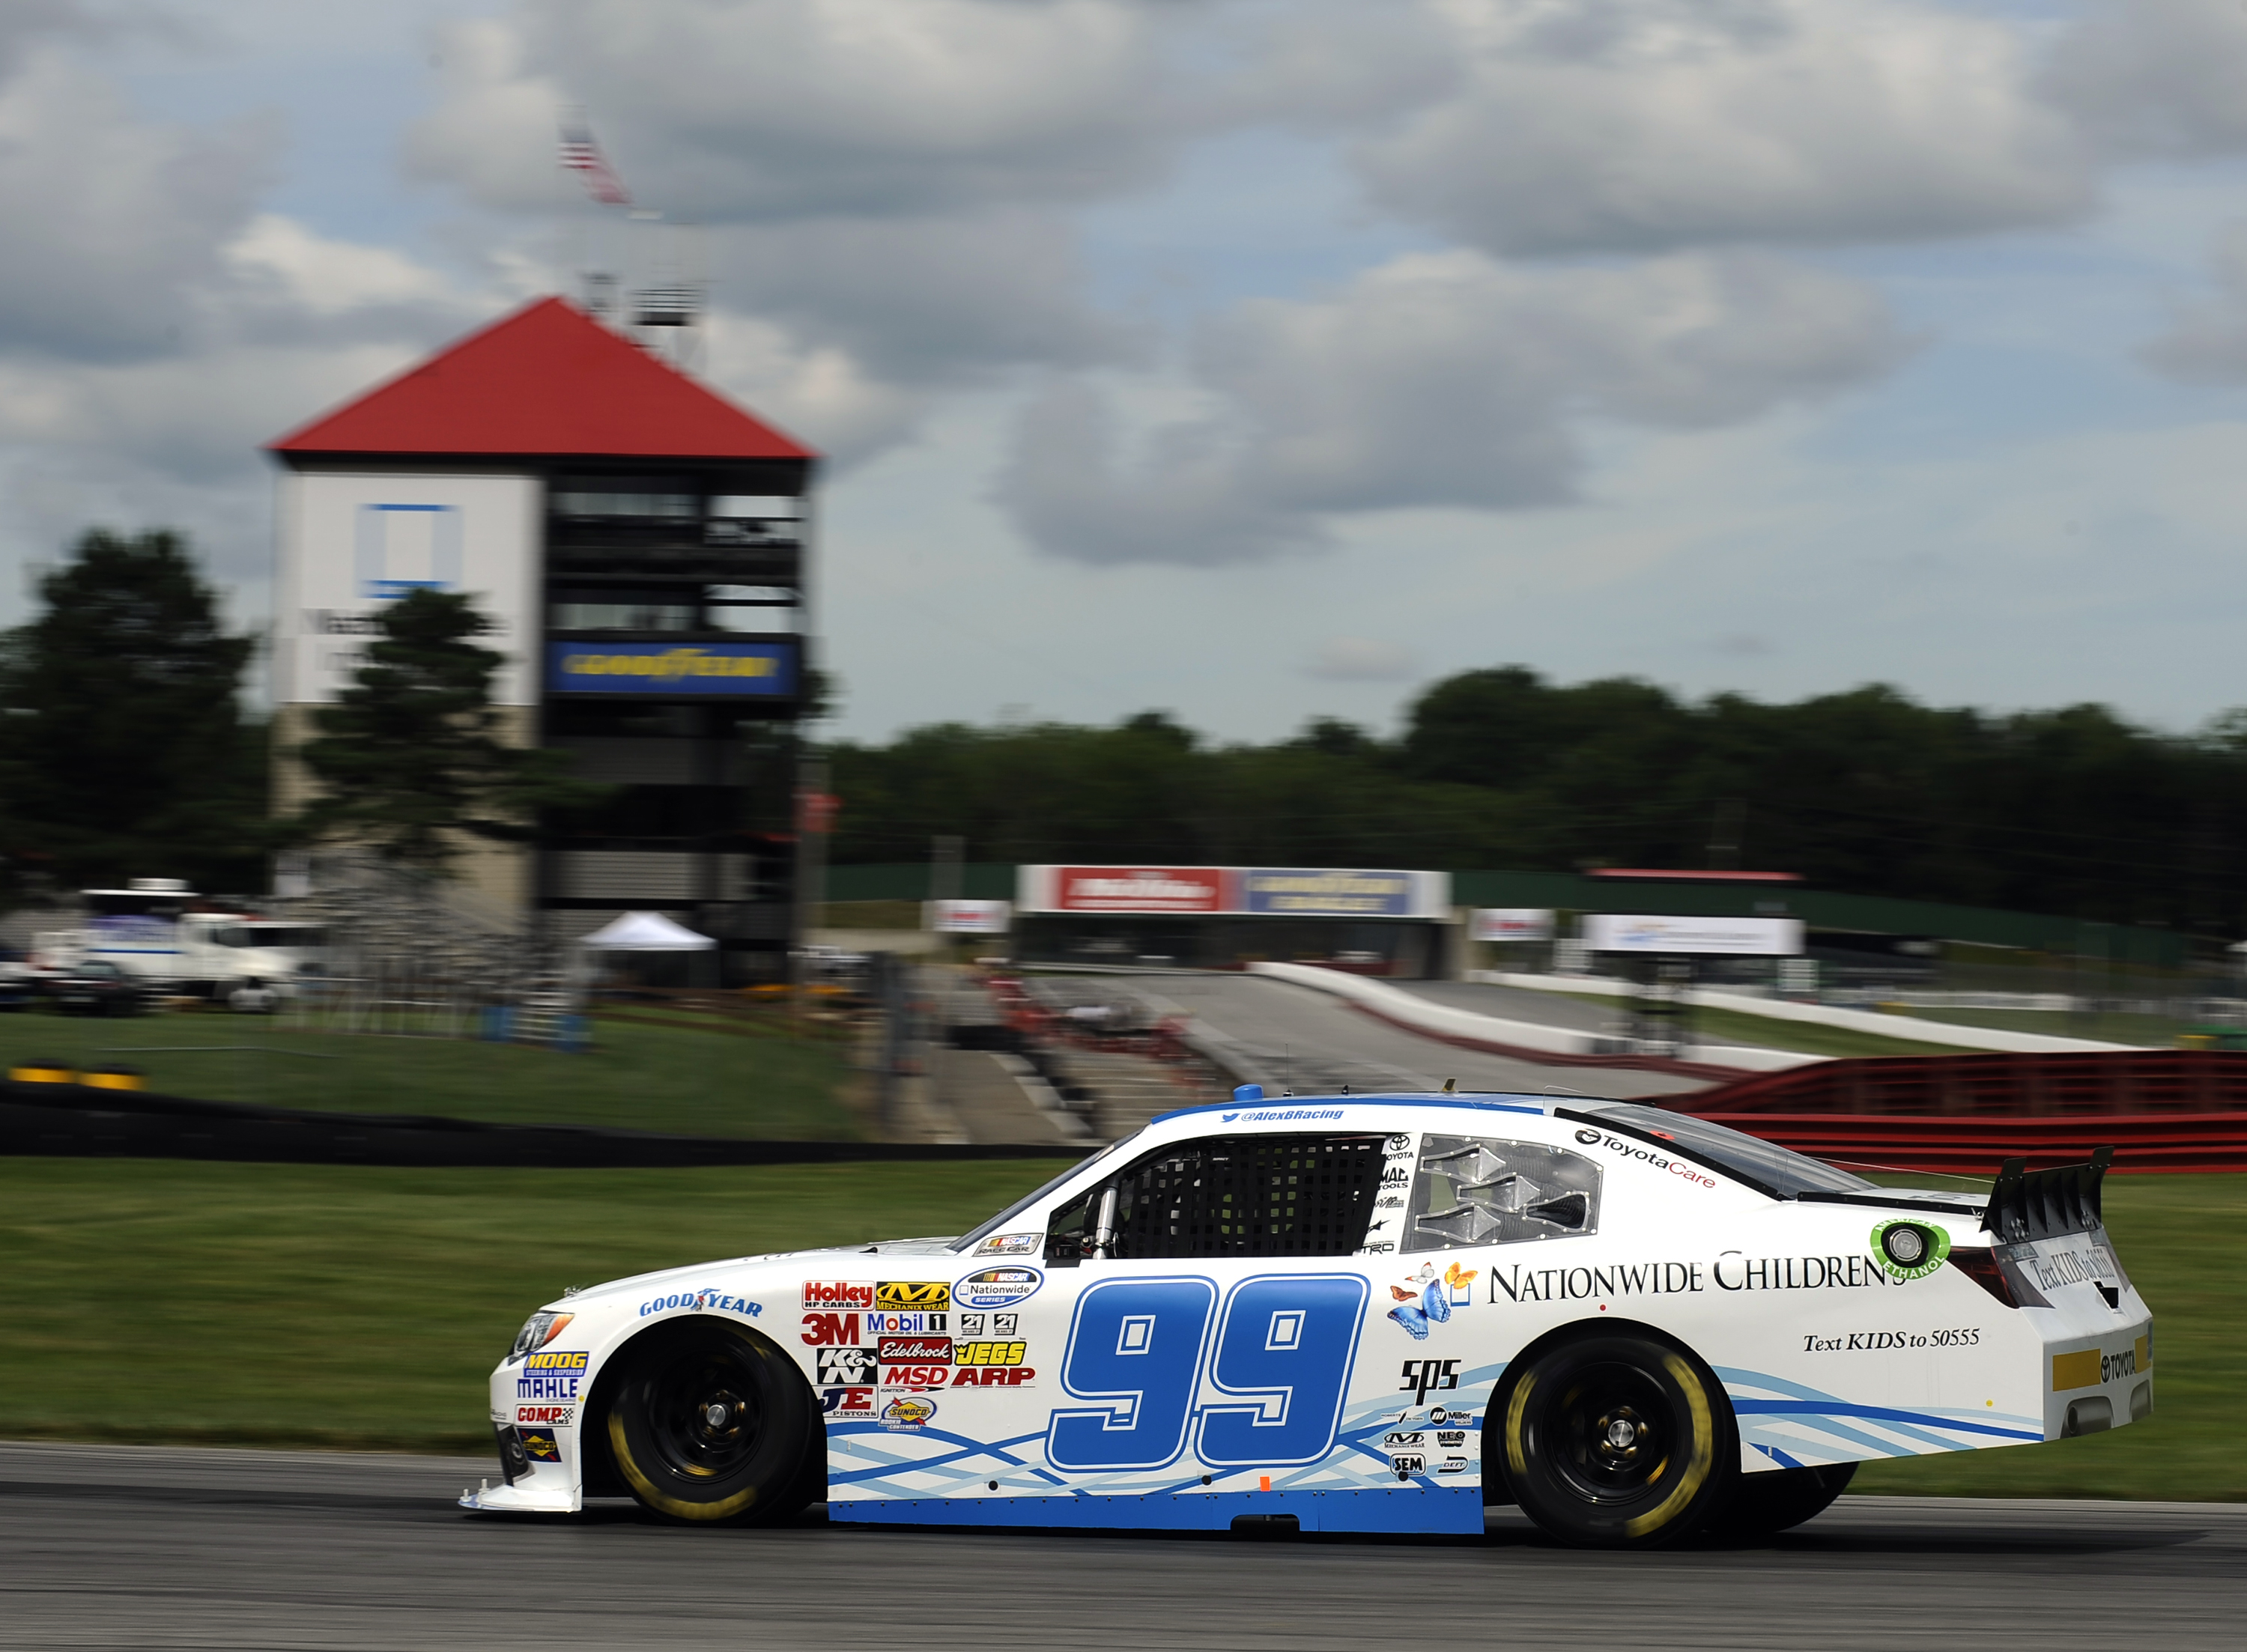 NASCAR Nationwide Series driver Alex Bowman driving the Nationwide Children's Hospital car at the 2013 Mid-Ohio Sports Car Course in Nationwide Children's Hospital 200